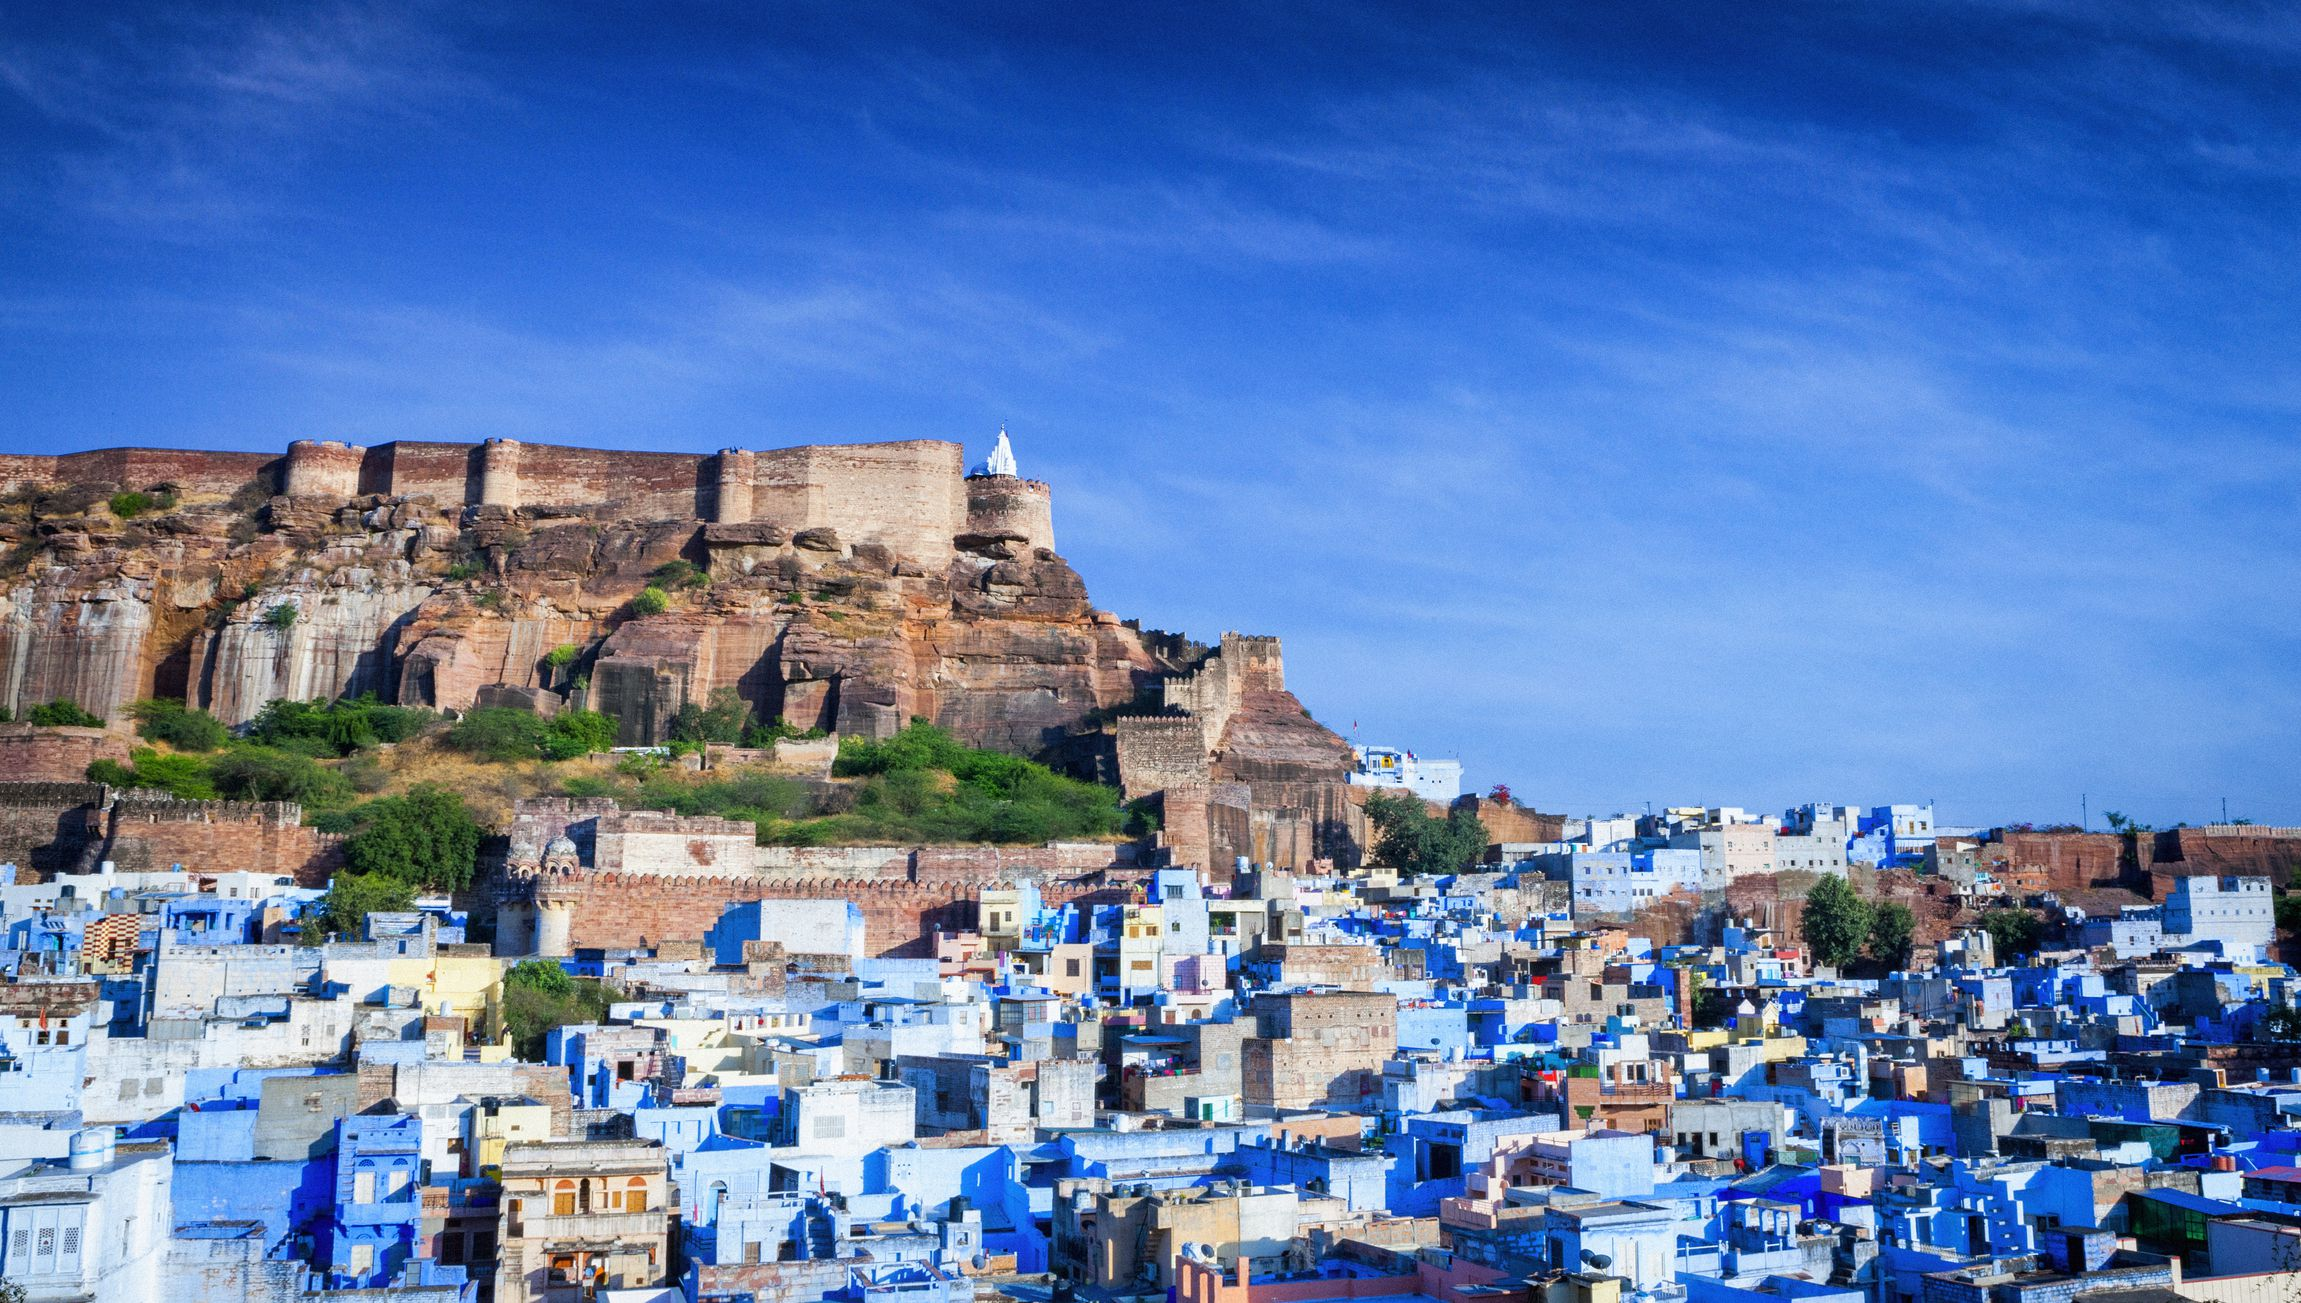 Top 12 Things to Do in Jodhpur